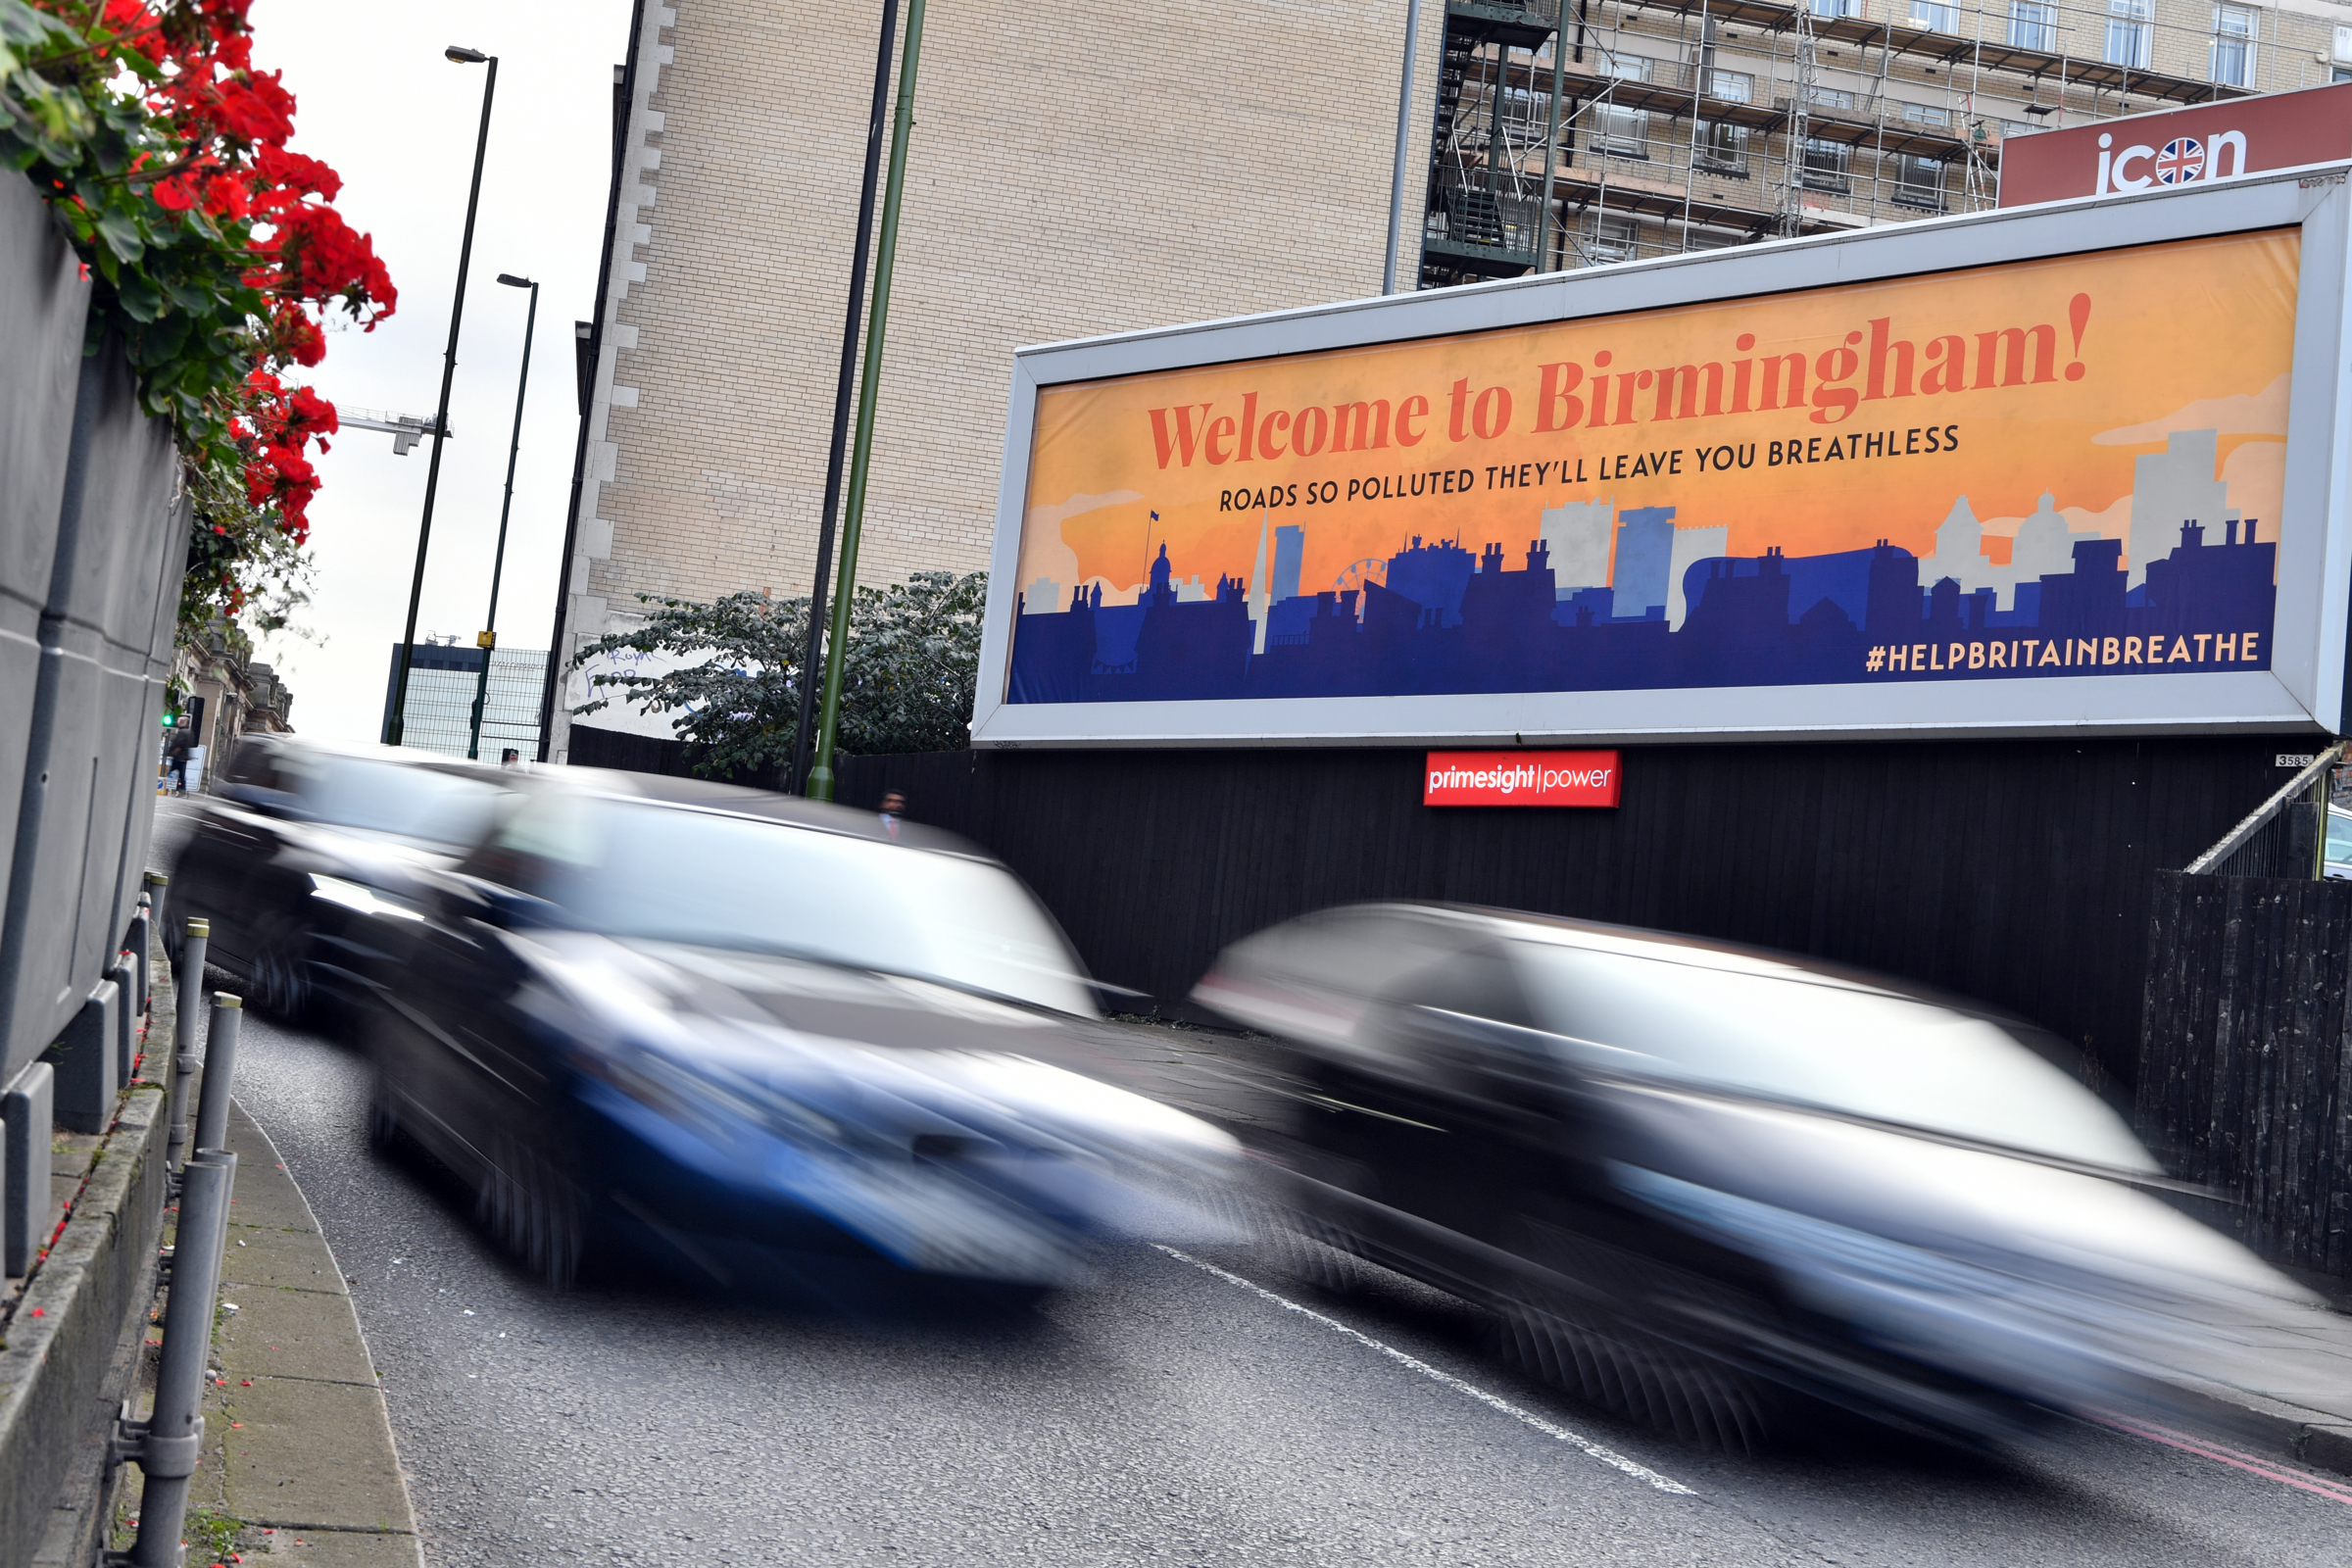 Hard-hitting cleaner air billboard campaign launches on polluted Birmingham road